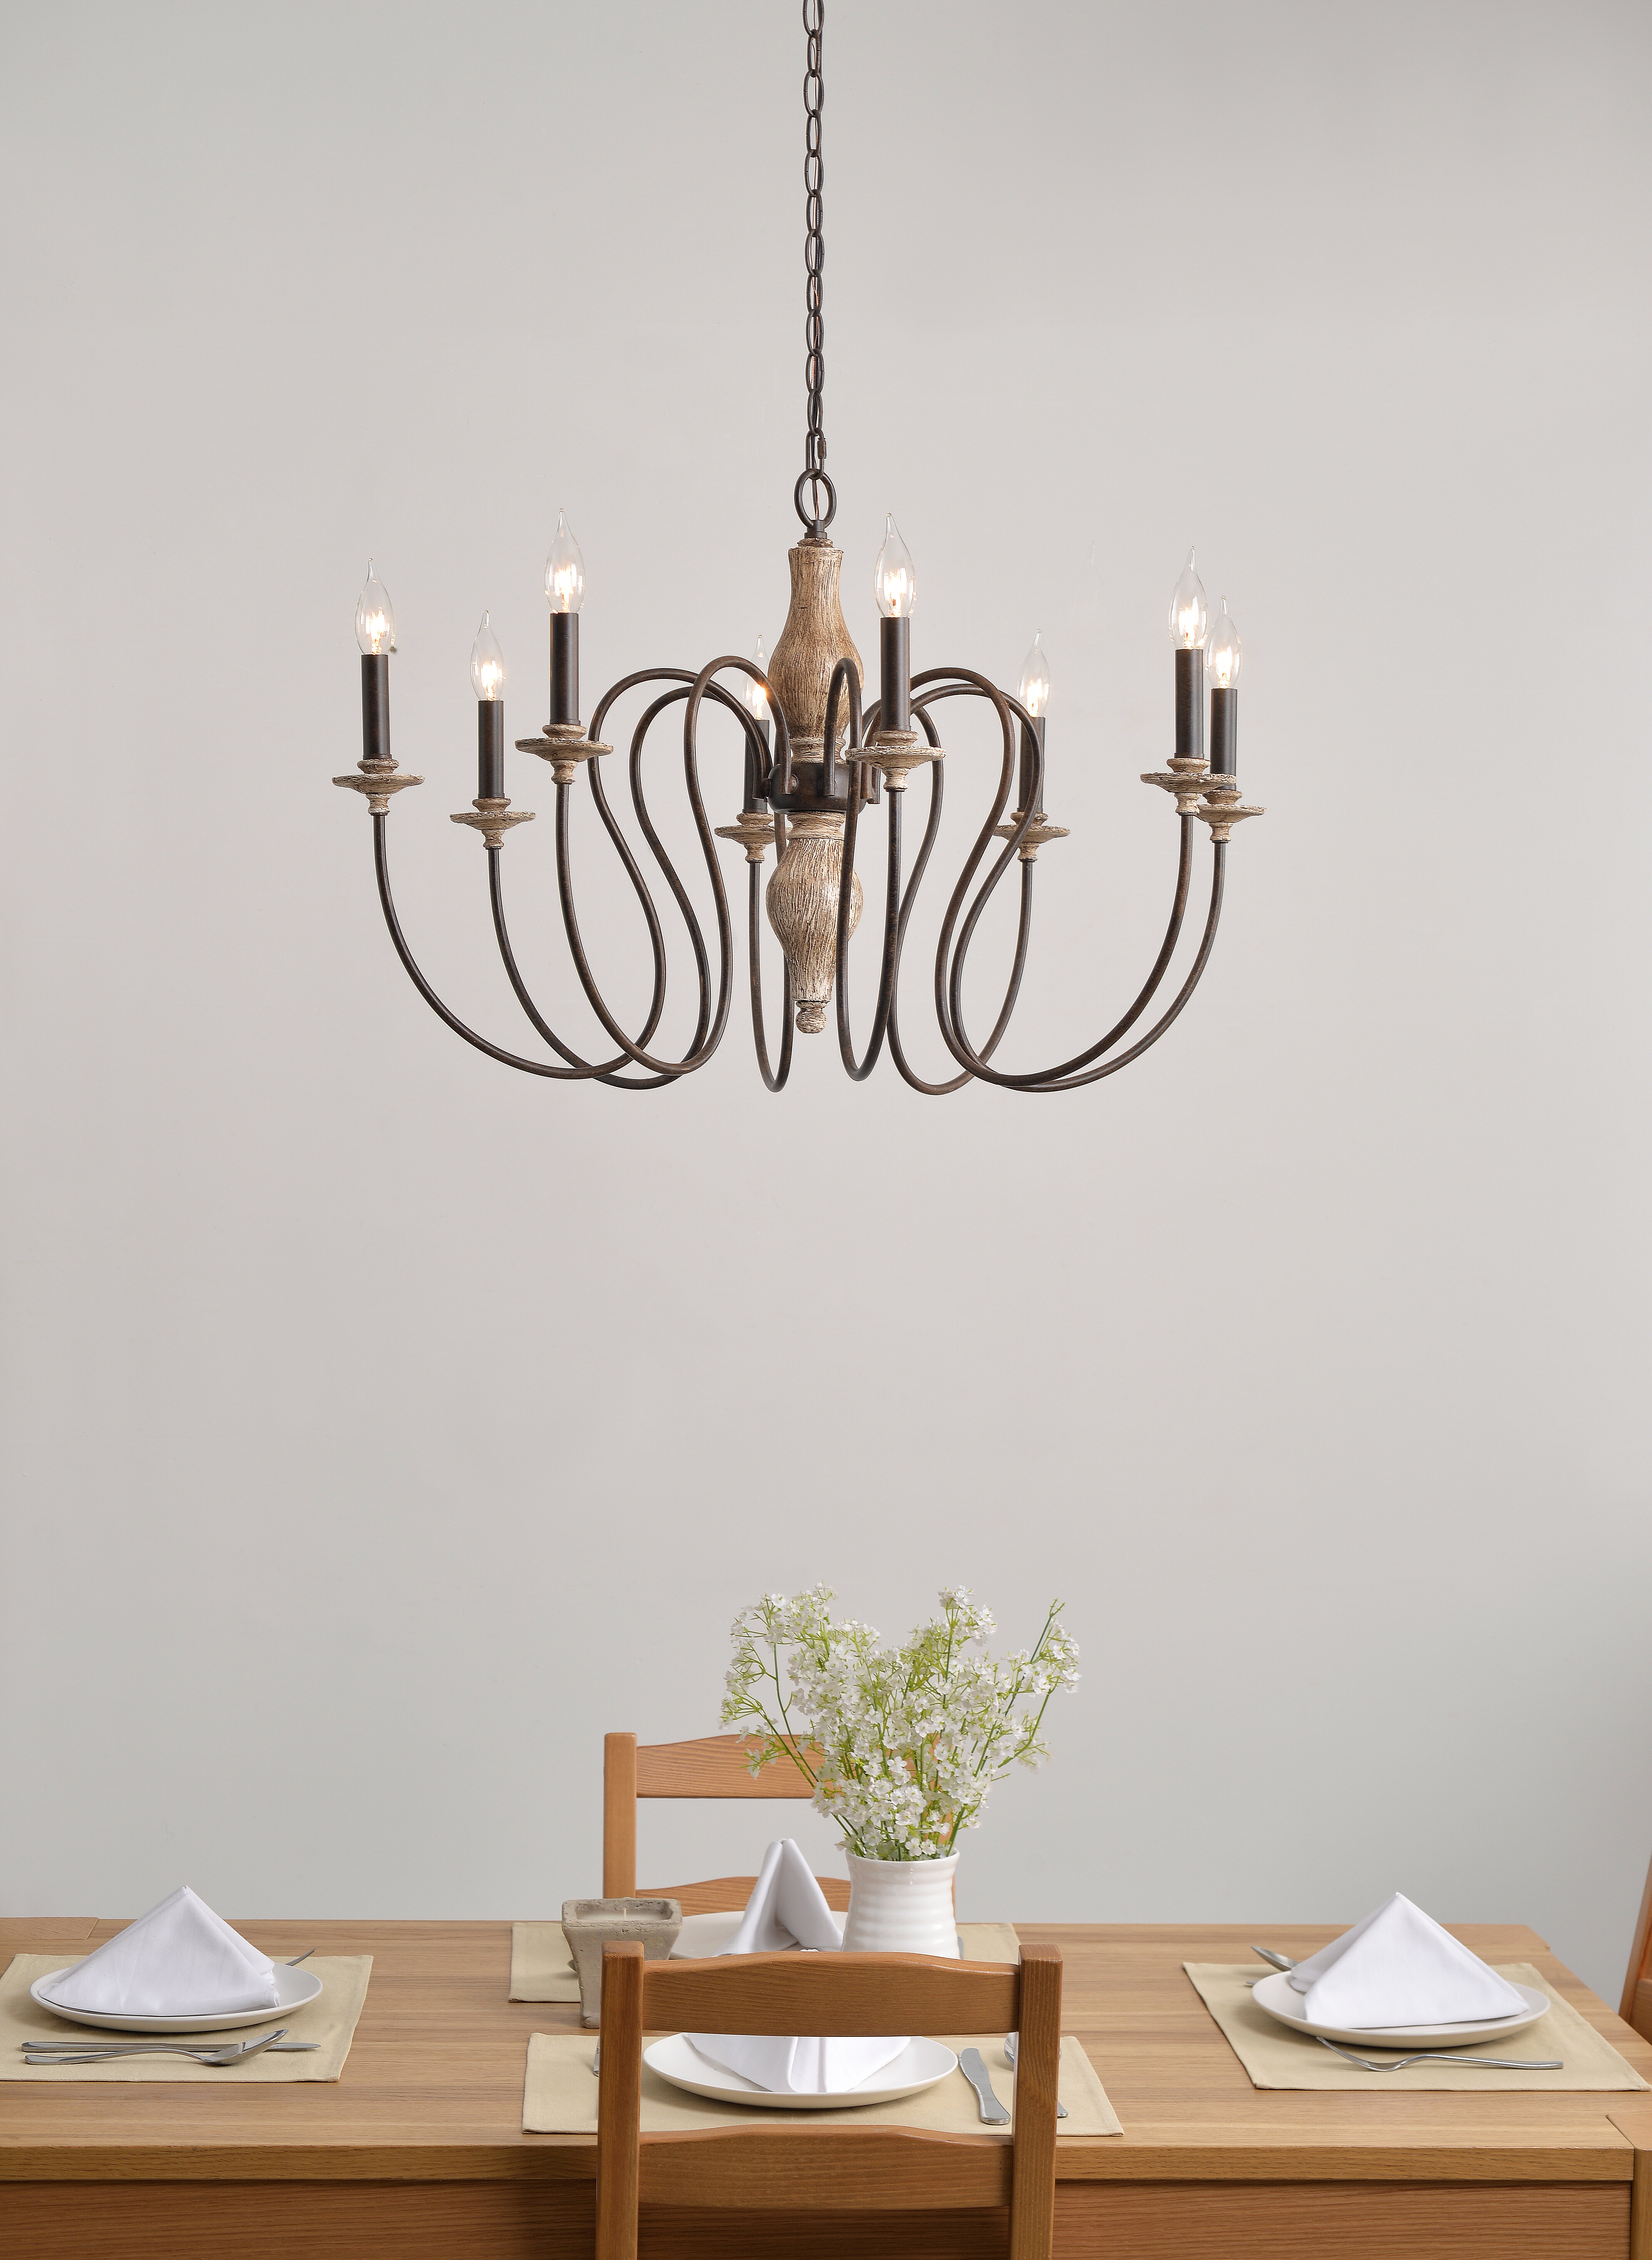 8-Light Candle Style Chandelier with regard to Watford 6-Light Candle Style Chandeliers (Image 1 of 30)